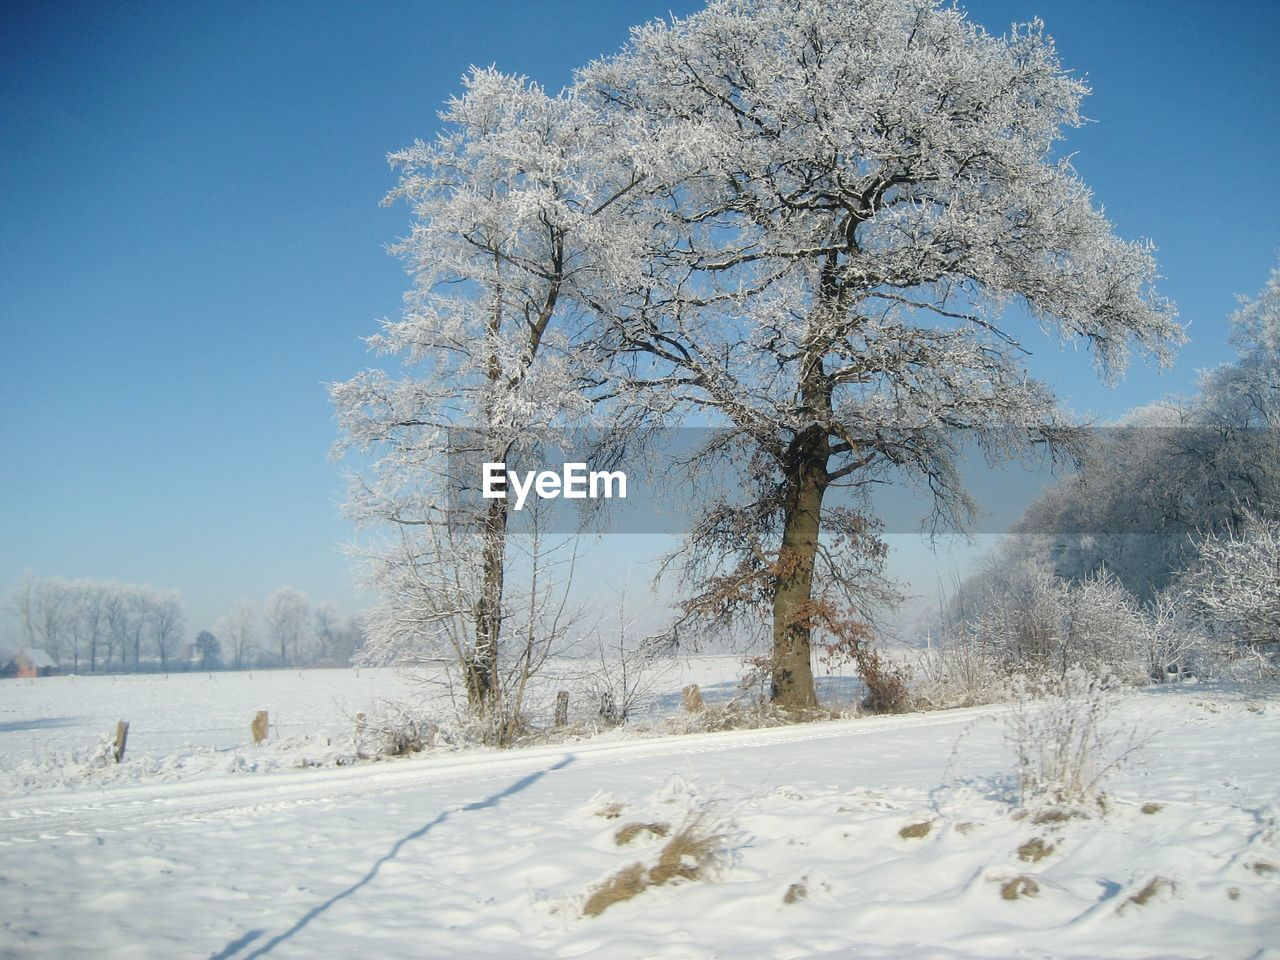 snow, cold temperature, winter, tree, plant, sky, beauty in nature, white color, scenics - nature, covering, nature, tranquility, field, no people, frozen, tranquil scene, bare tree, land, day, outdoors, cold, extreme weather, powder snow